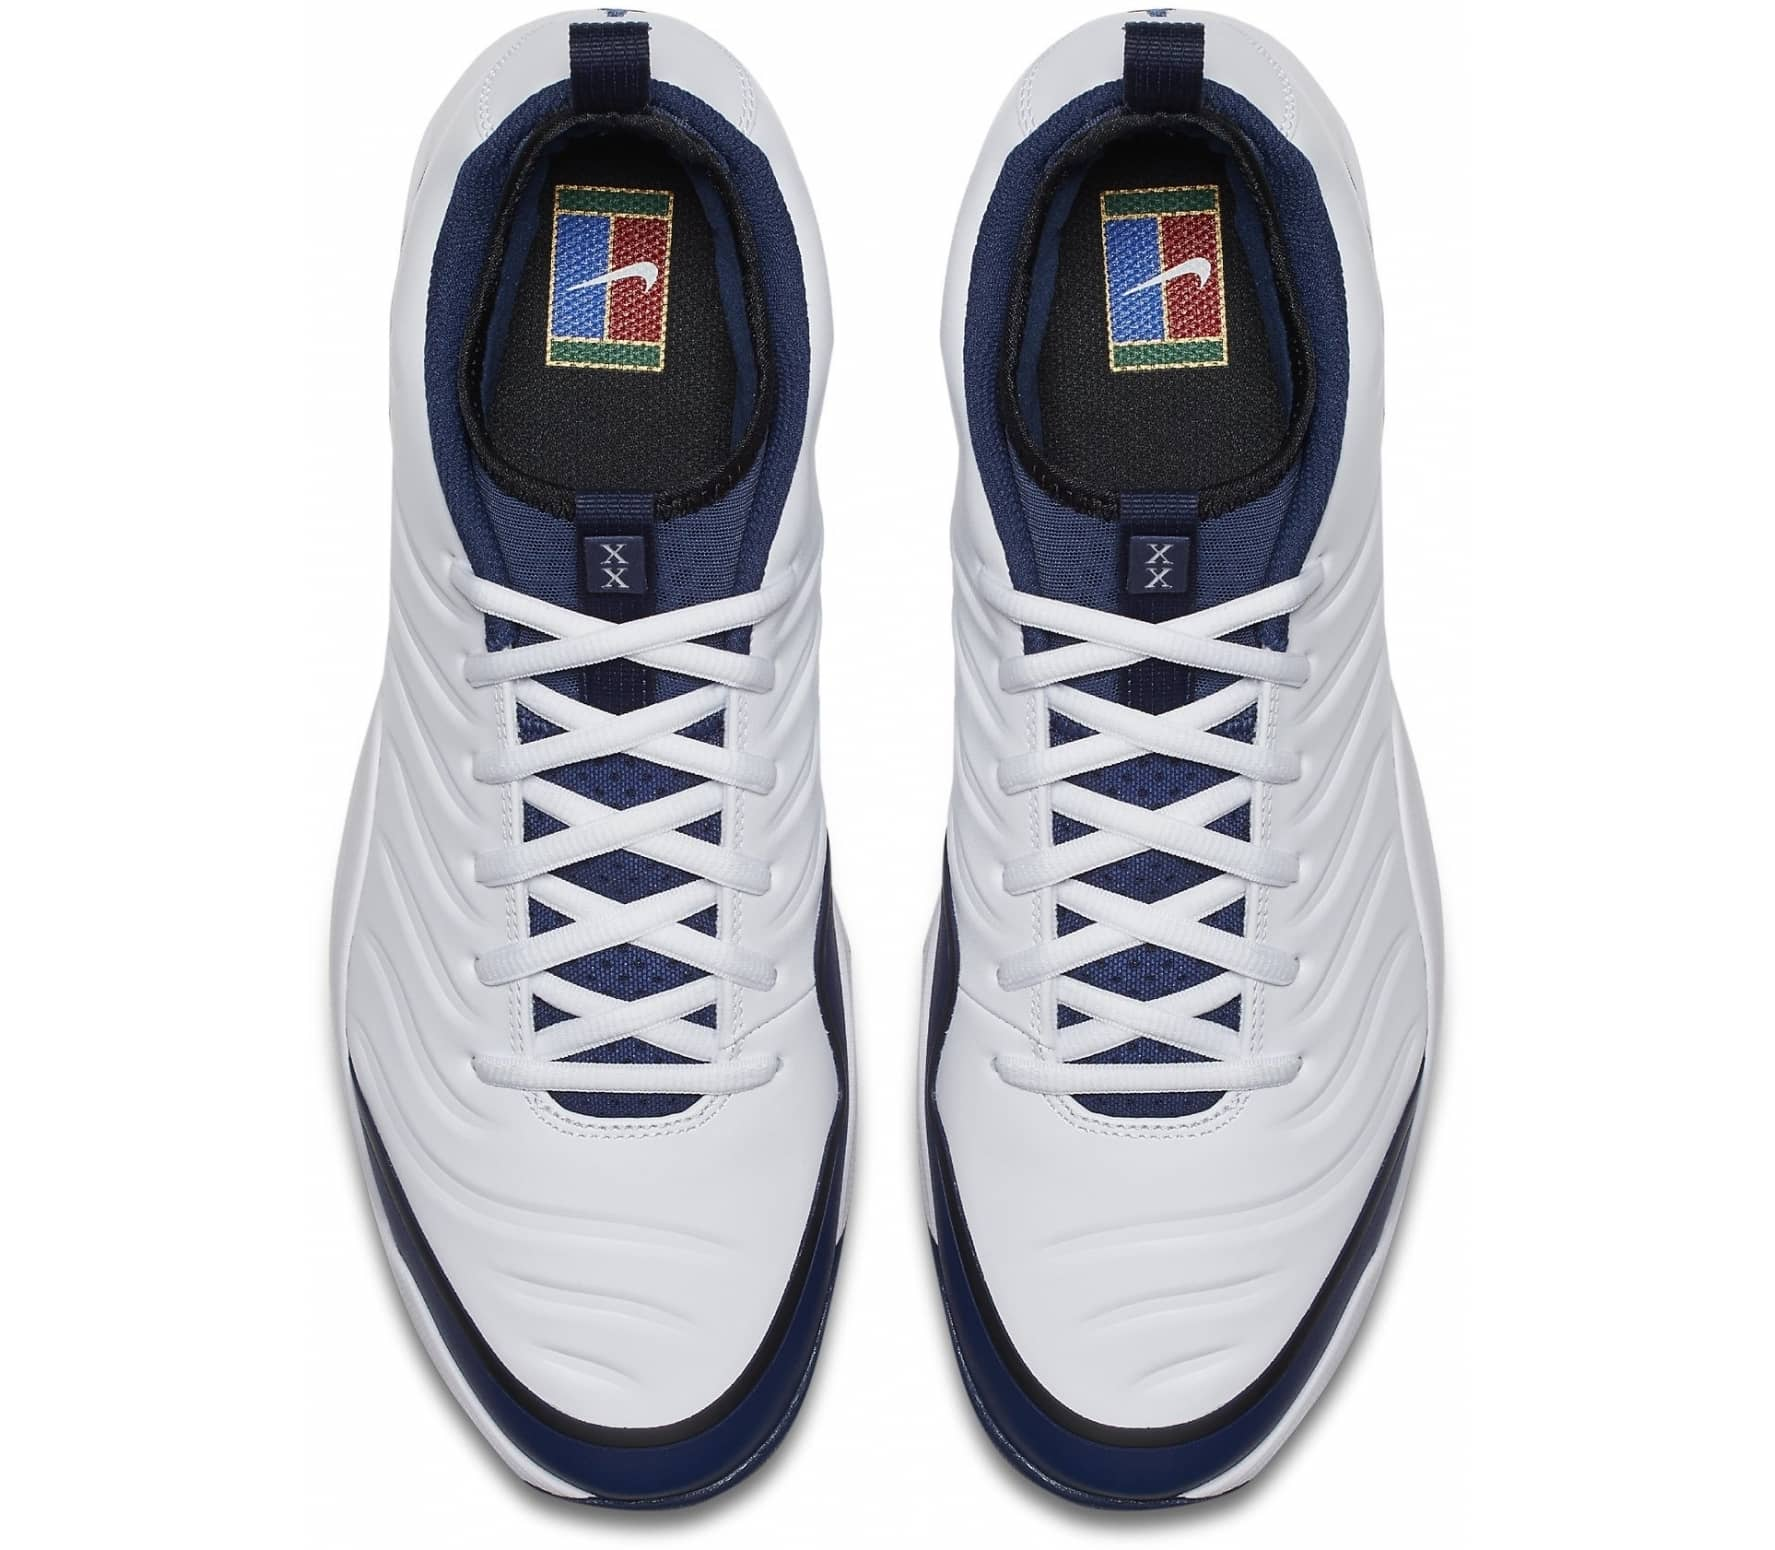 separation shoes 9c2b3 50dce Nike - Air Zoom Oscillate men's tennis shoes (white/dark blue) - buy ...